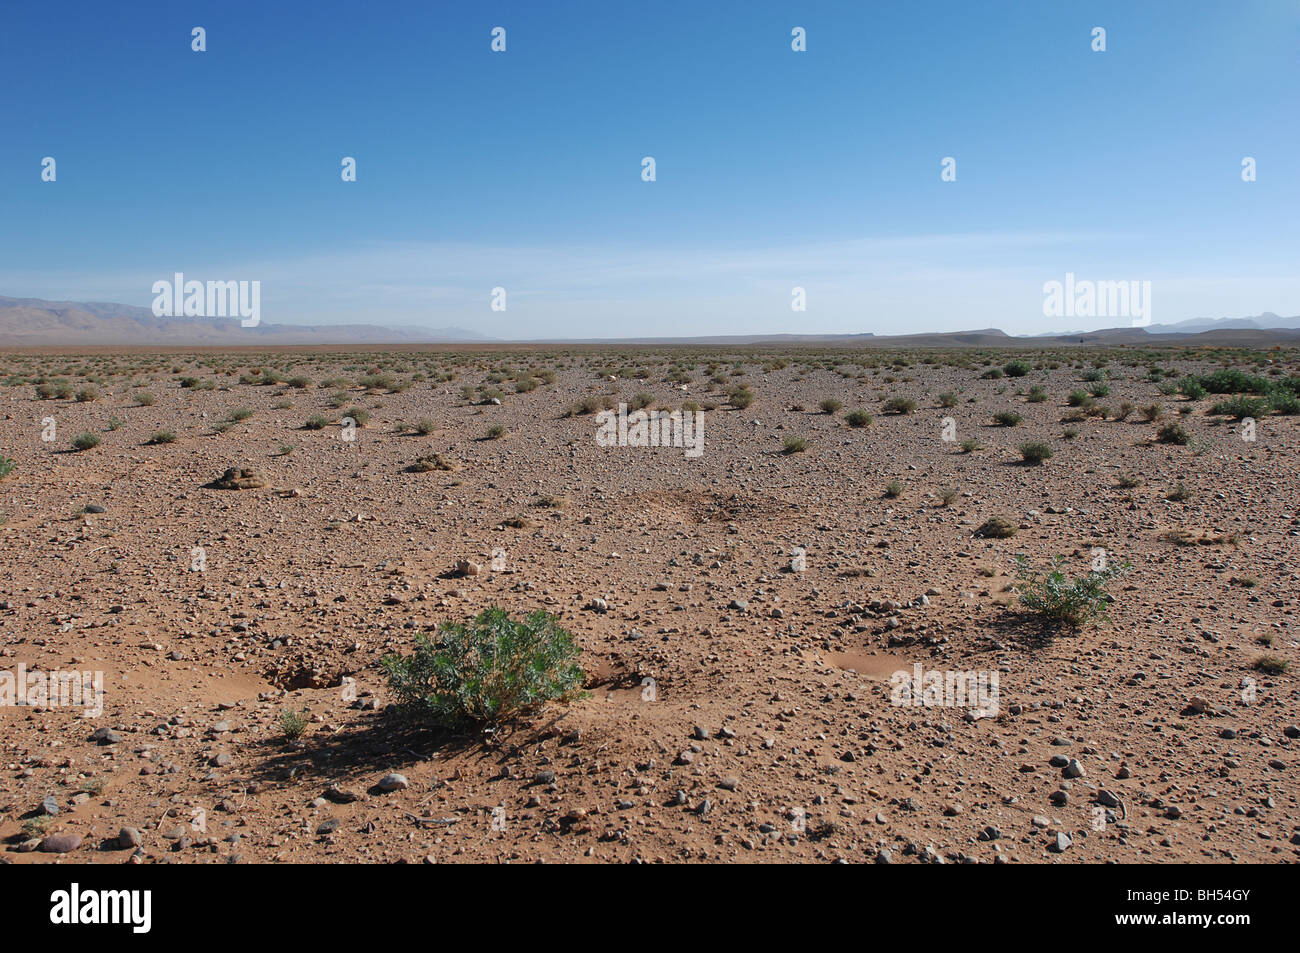 A view of the Sahara Desert in Morocco - Stock Image